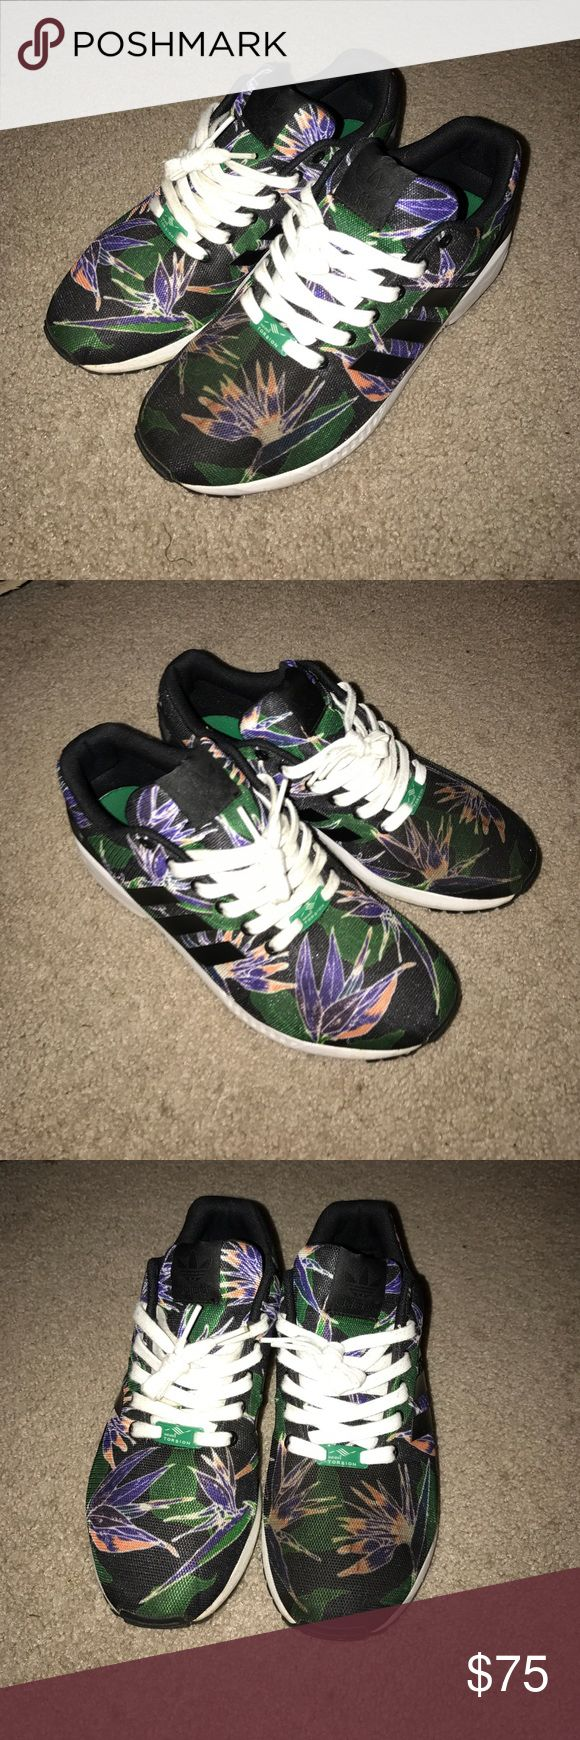 Adidas Torsion ZX flux floral Conditon 9/10. Left shoe is a little bit dirtier the the right but nothing wrong with them. Adidas Shoes Sneakers